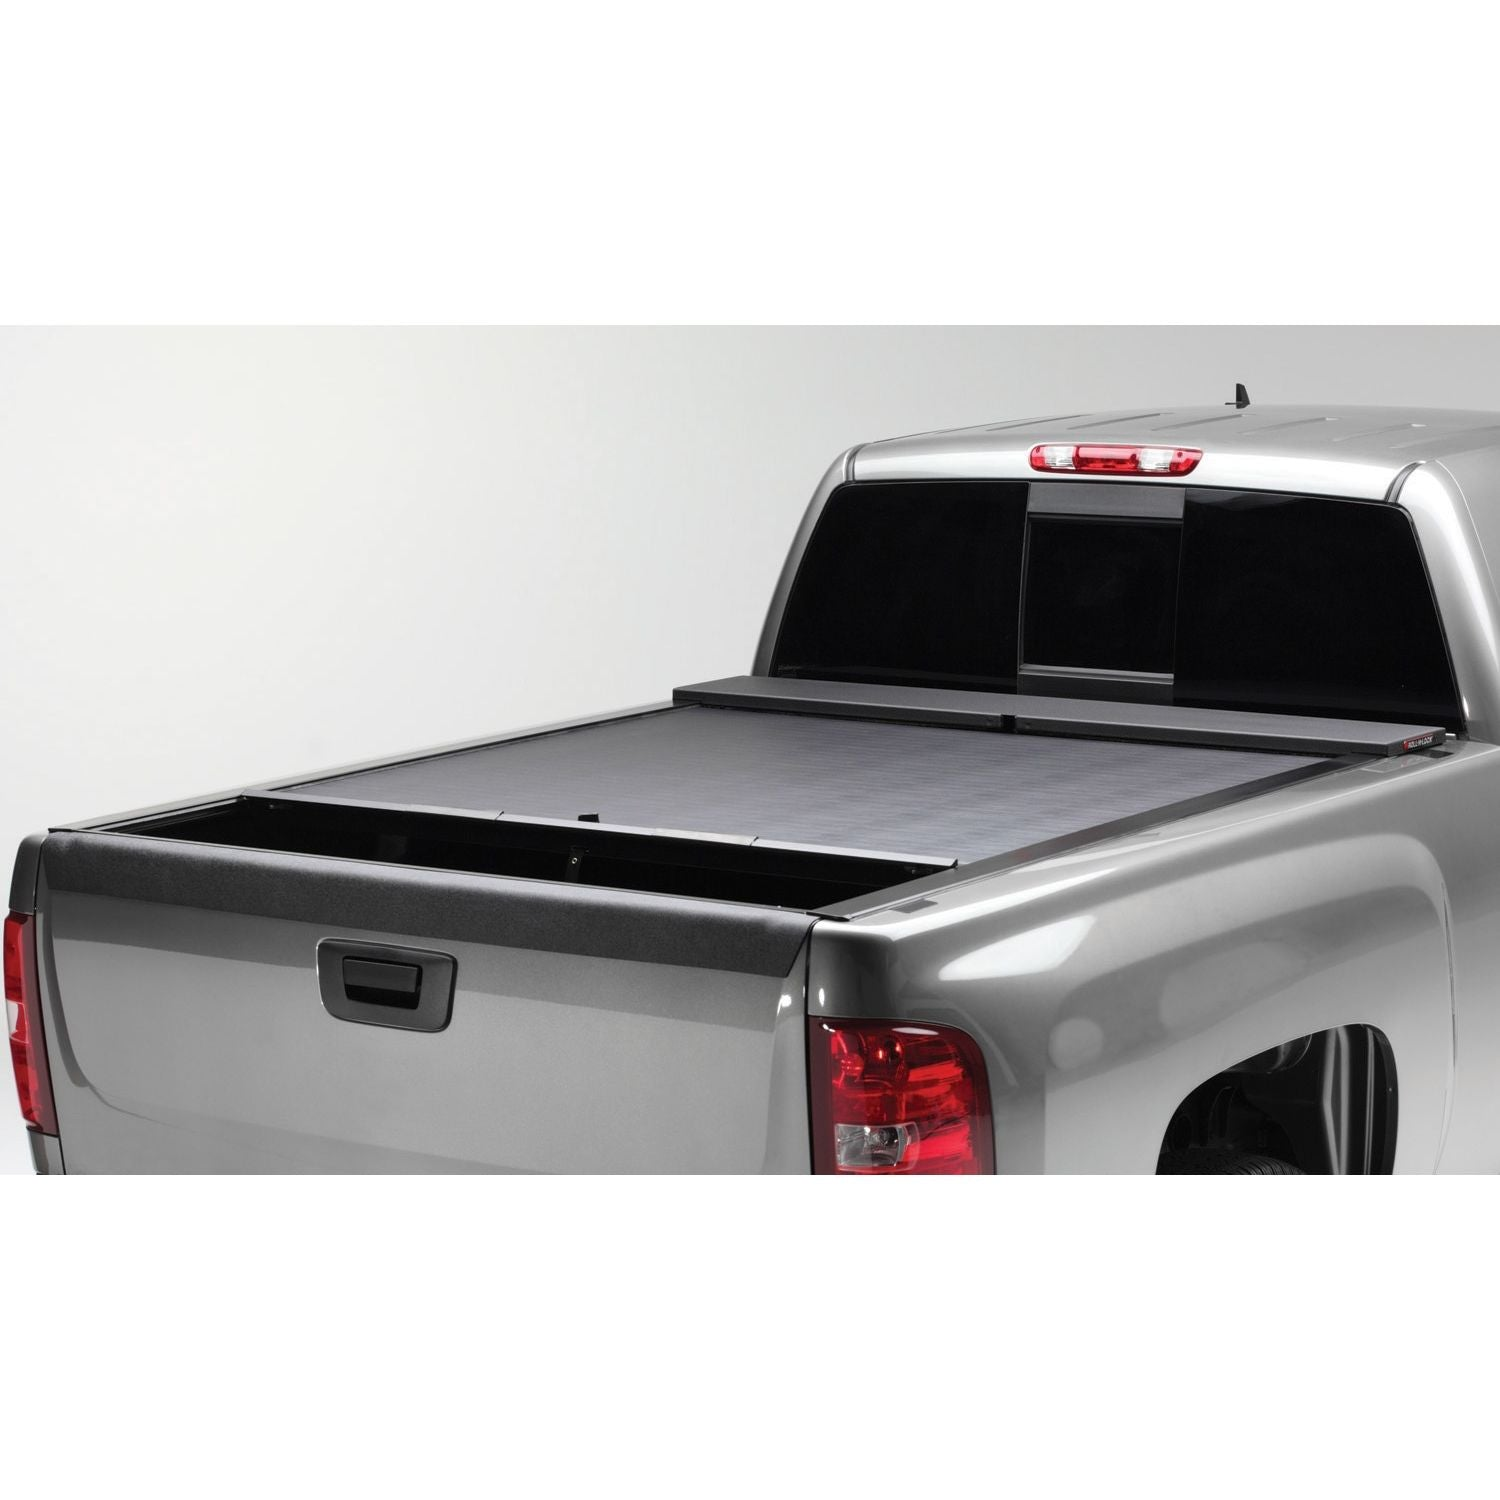 Roll-N-Lock LG200M Locking Retractable M-Series Truck Bed Tonneau Cover for 1988-1998 Chevrolet Pickup & 1988-1998 GMC Pickup | Fits 6.6 Ft. Bed